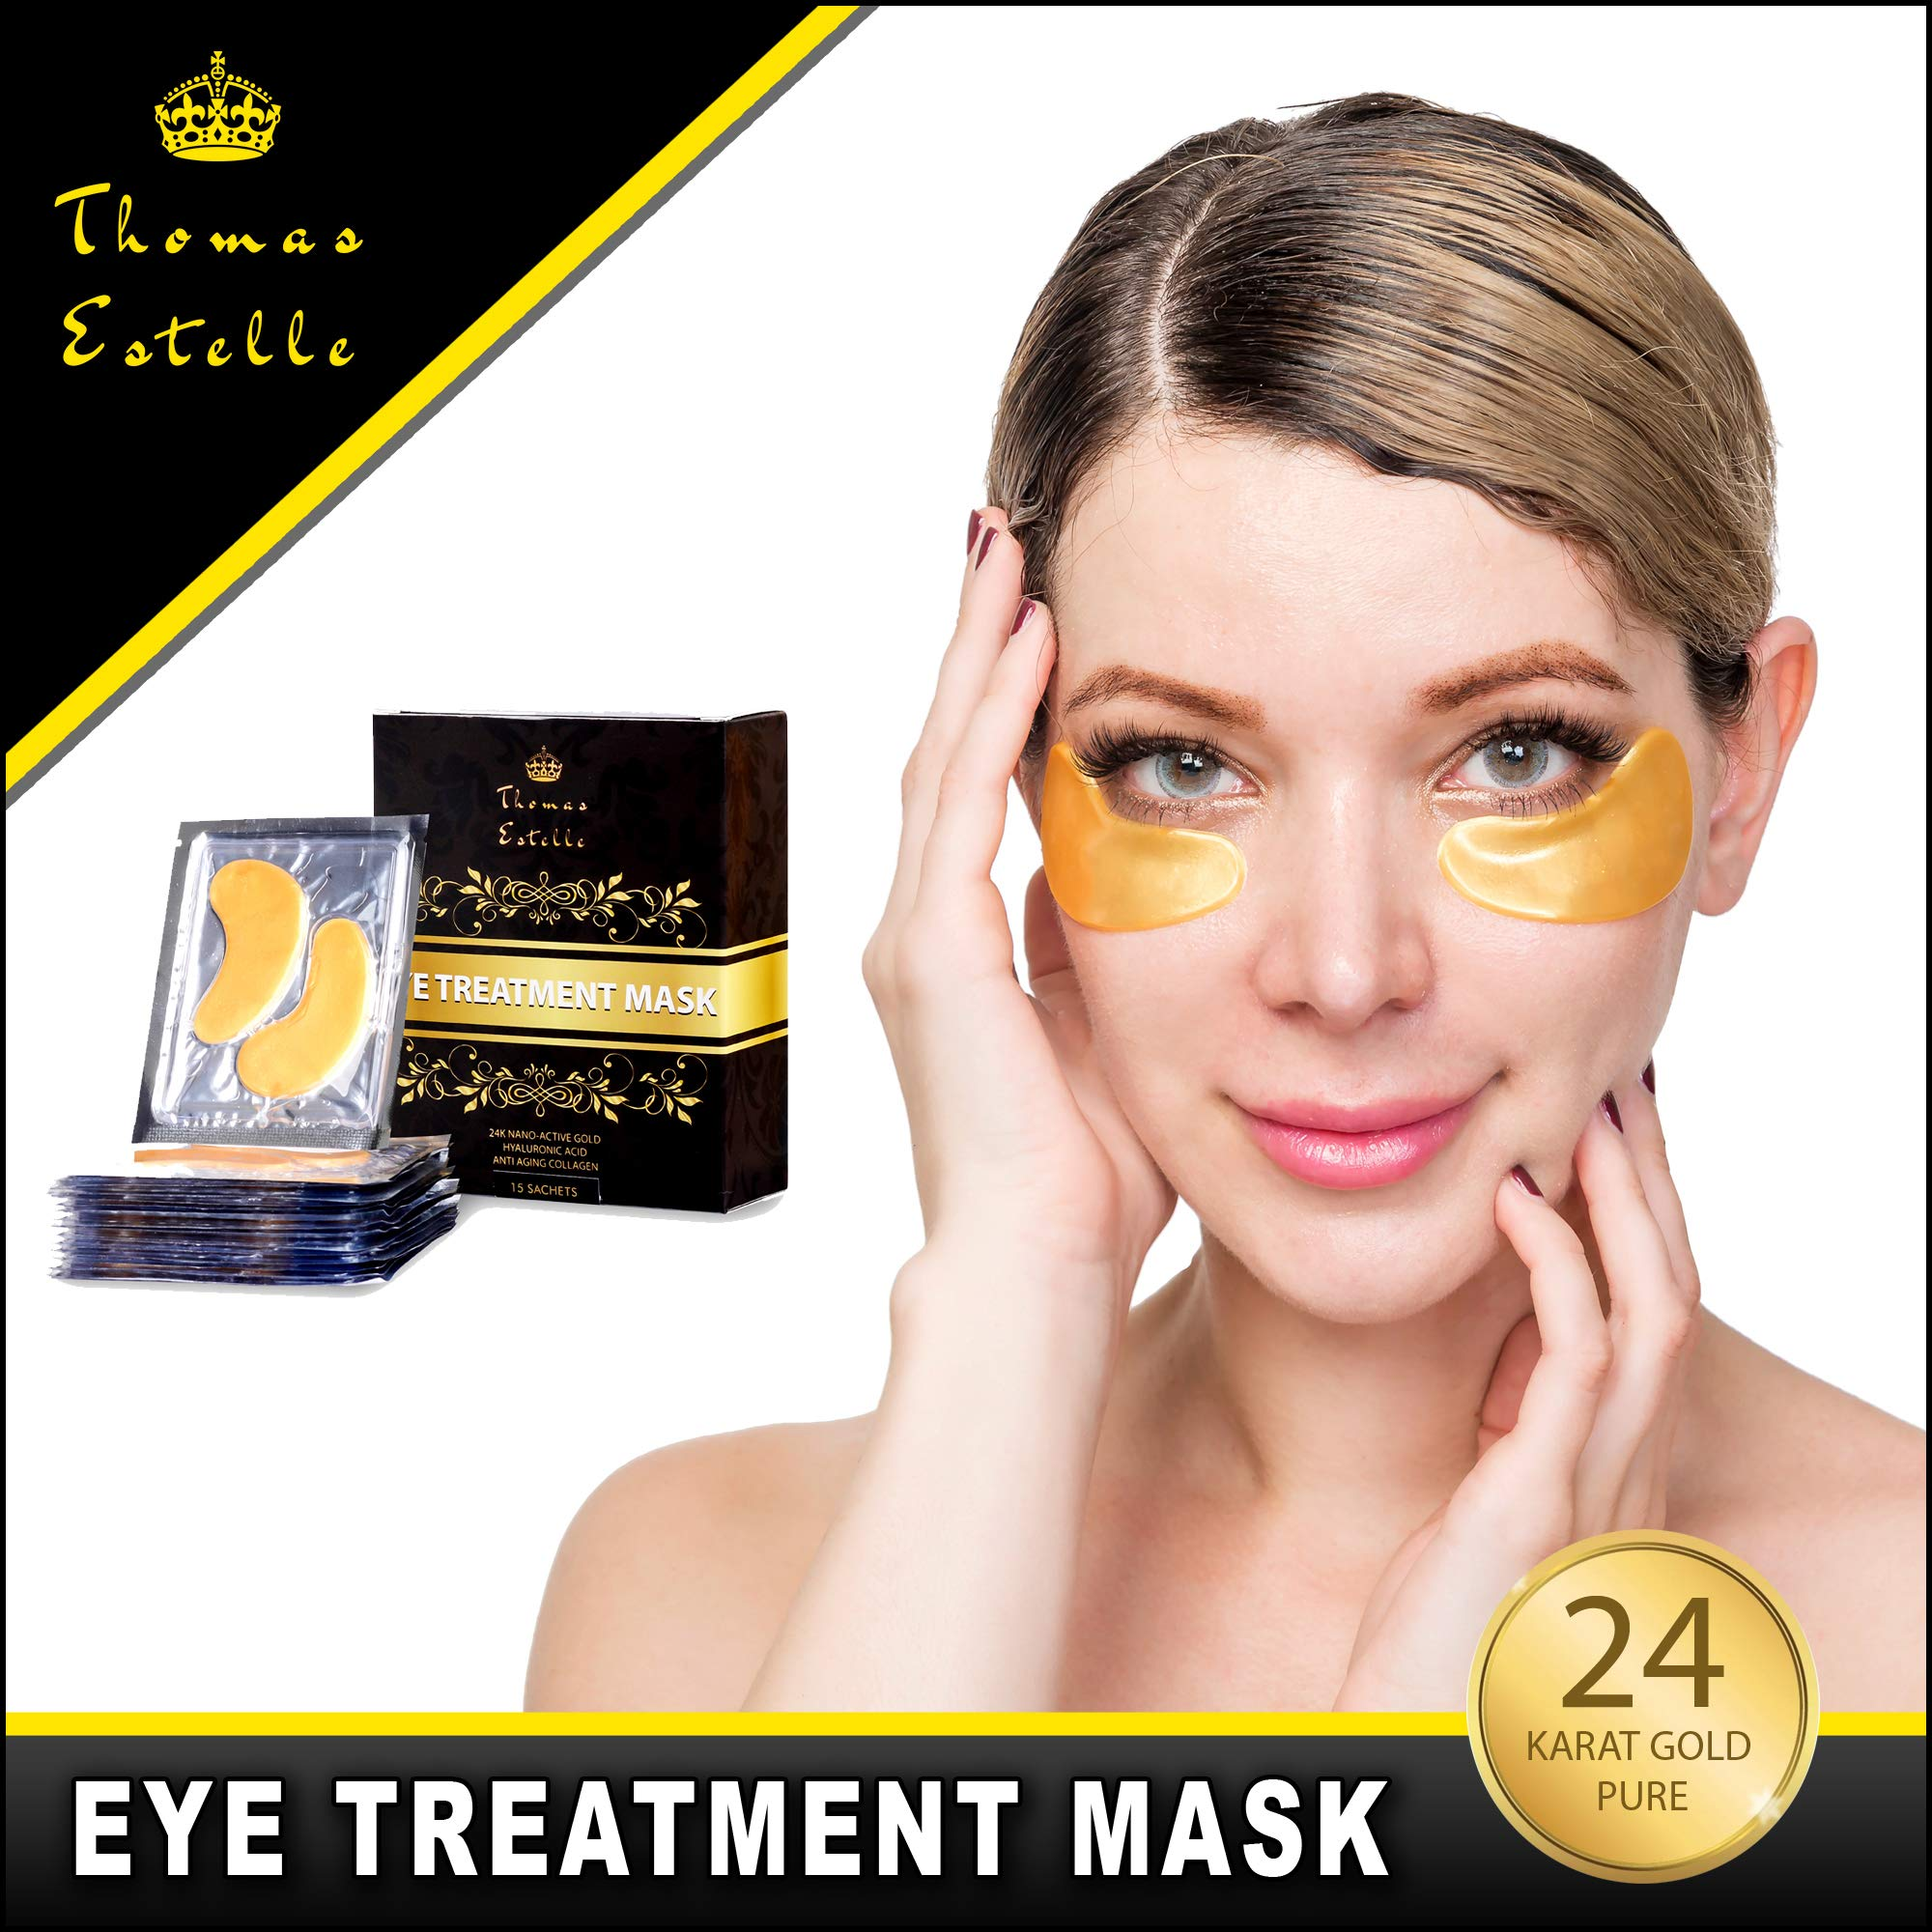 Under Eye Bags Treatment - Gel For Puffiness, Wrinkles, Dark Circles, Crows Feet, Puffy Eyes -24k Gold Luxury - The Best Natural Collagen Mask - Women And Men Masks - Anti Aging Moisturizer Pads by Thomas Estelle (Image #4)